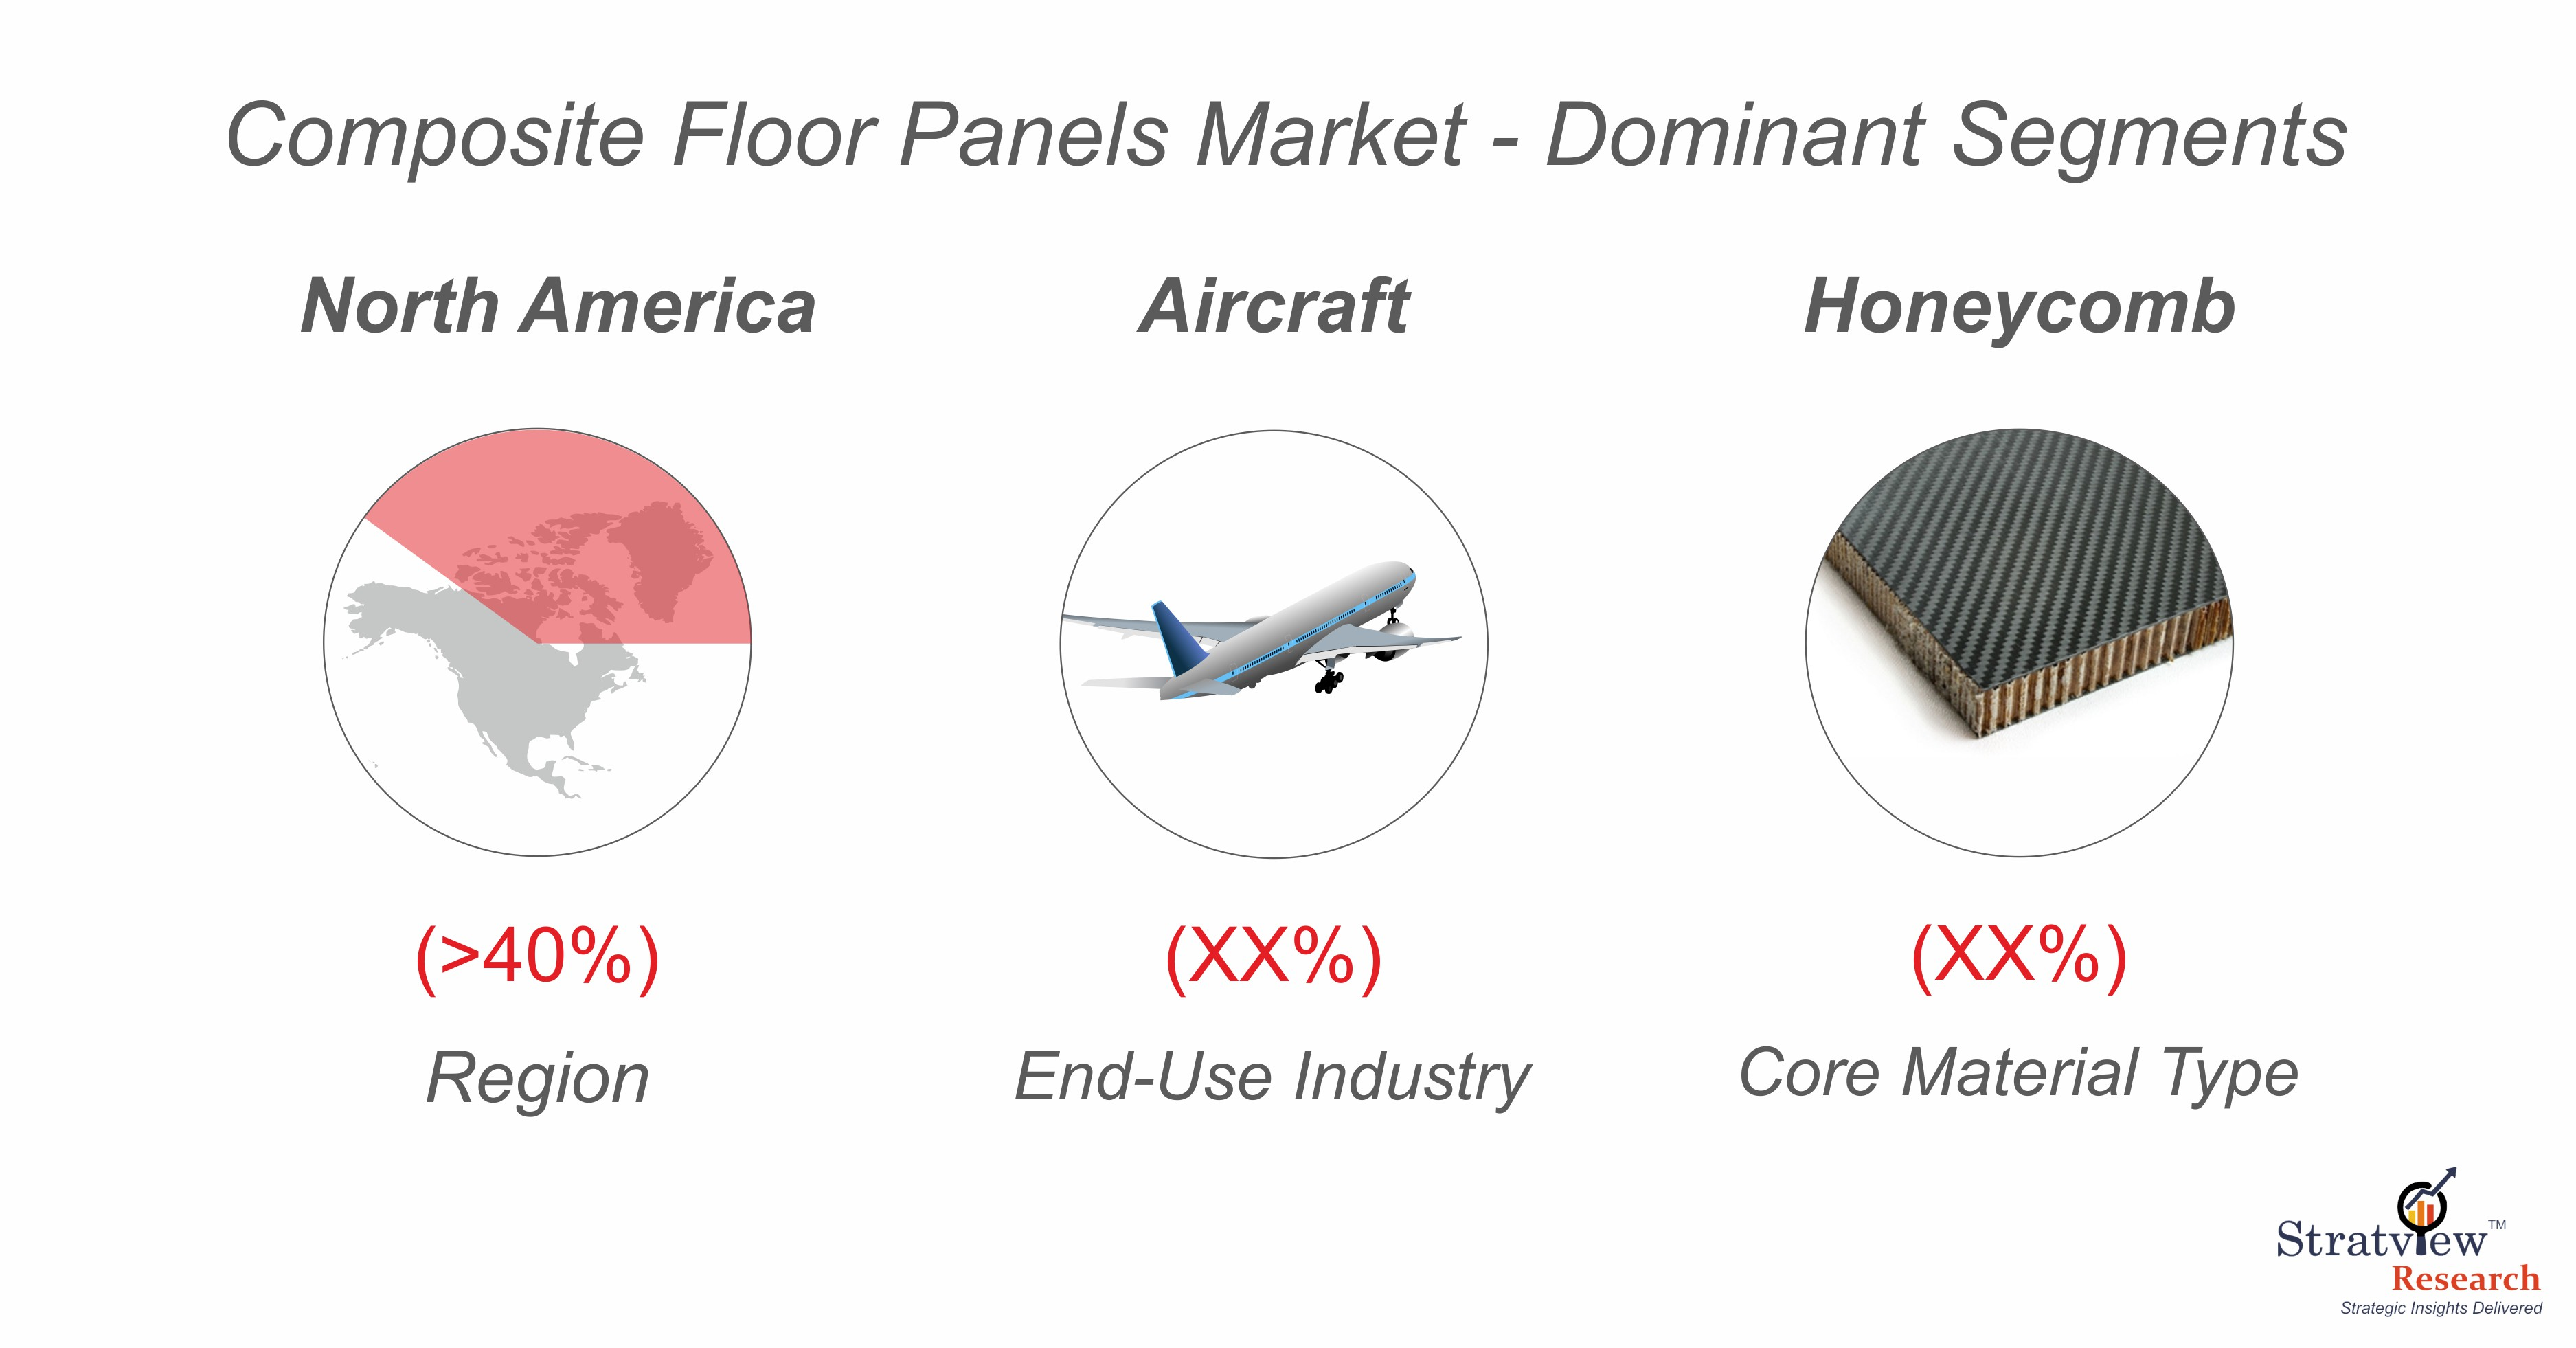 Composite Floor Panels Market Segmentation